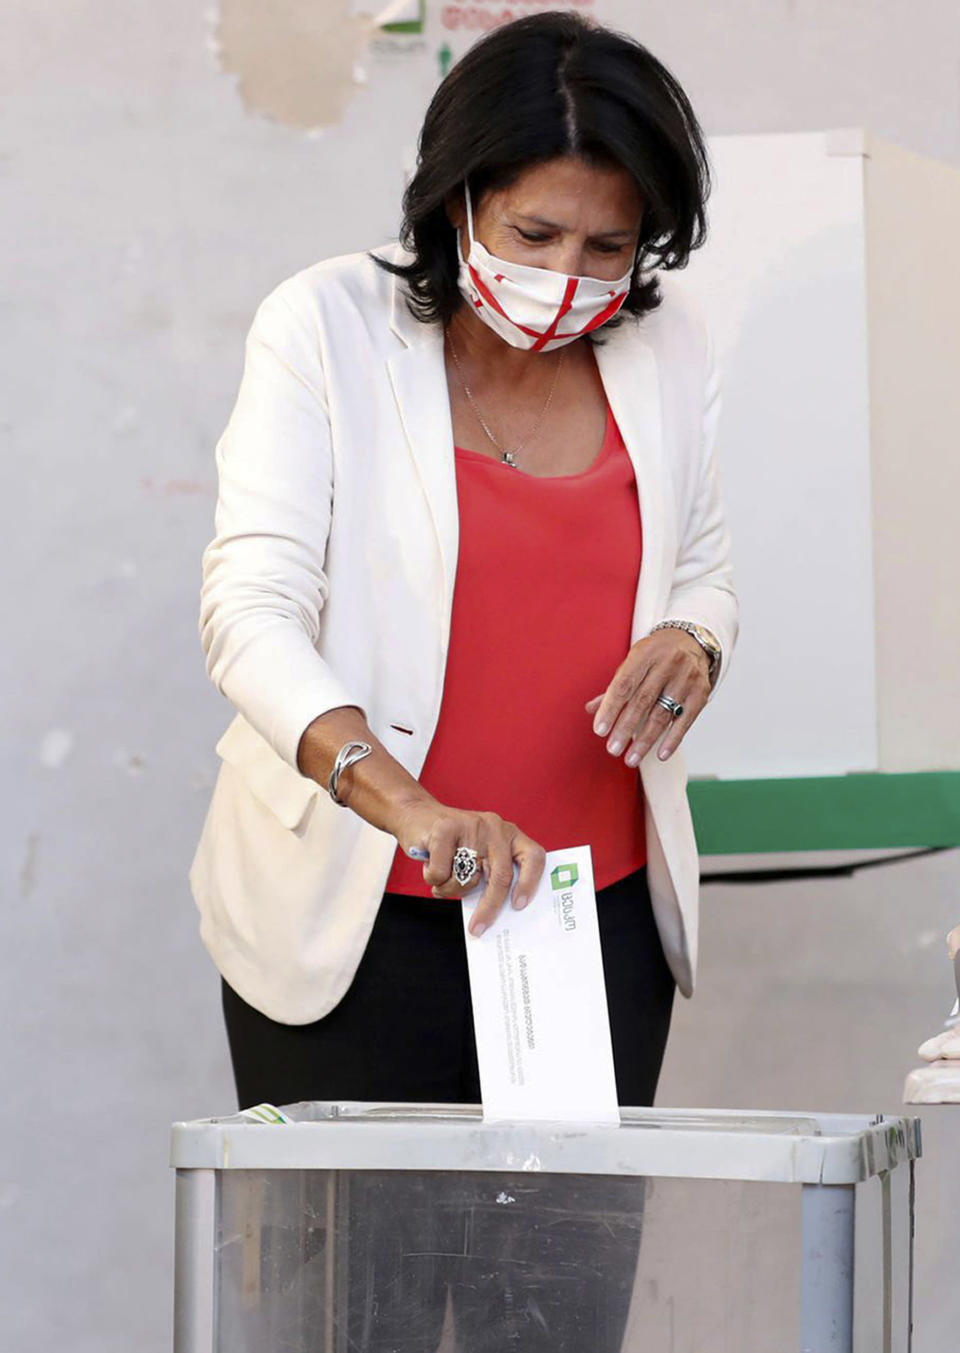 In this handout photo released by Georgia's President Press office, Georgia's President Salome Zurabishvili, wearing a face mask to help curb the spread of the coronavirus, casts her ballot at a polling station during the parliamentary elections in Tbilisi, Georgia, Saturday, Oct. 31, 2020. The hotly contested election between the Georgian Dream party, created by billionaire Bidzina Ivanishvili who made his fortune in Russia and has held a strong majority in parliament for eight years, and an alliance around the country's ex-President Mikheil Saakashvili, who is in self-imposed exile in Ukraine. (Georgia's President Press office via AP)